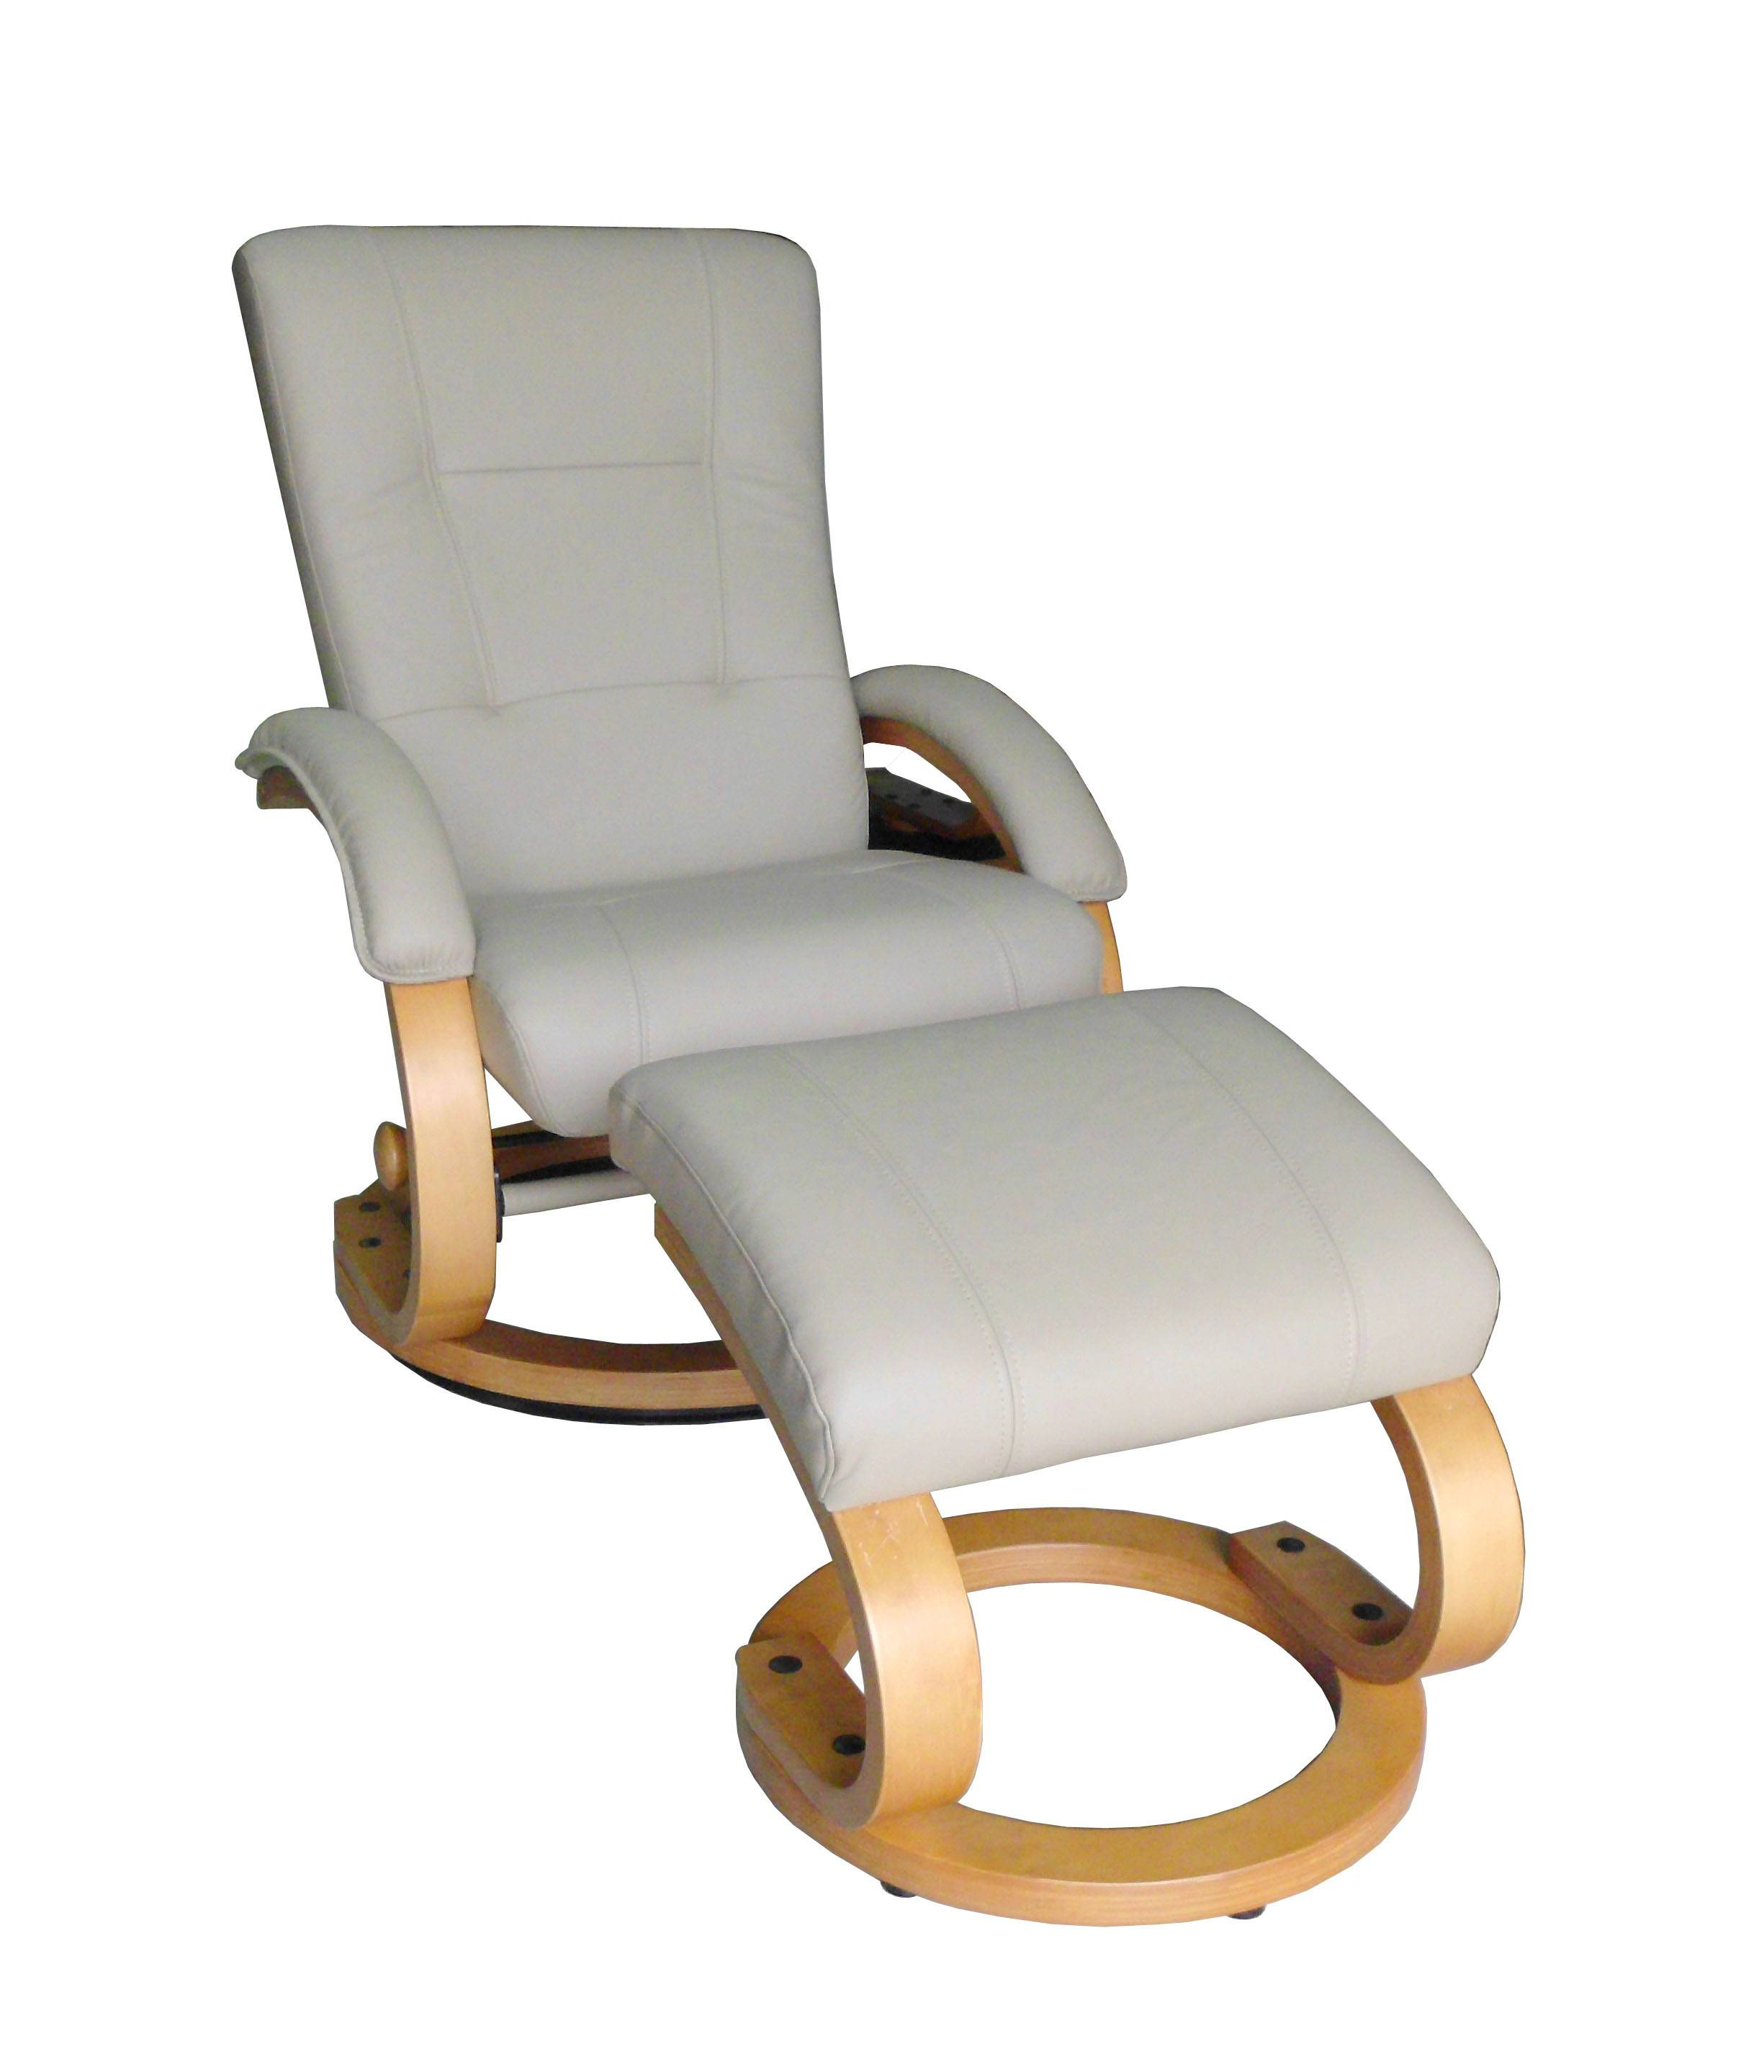 BH-8231 Recliner Chair, Recliner Sofa, Reclining Chair, Reclining Sofa, Home Furniture, House Furn